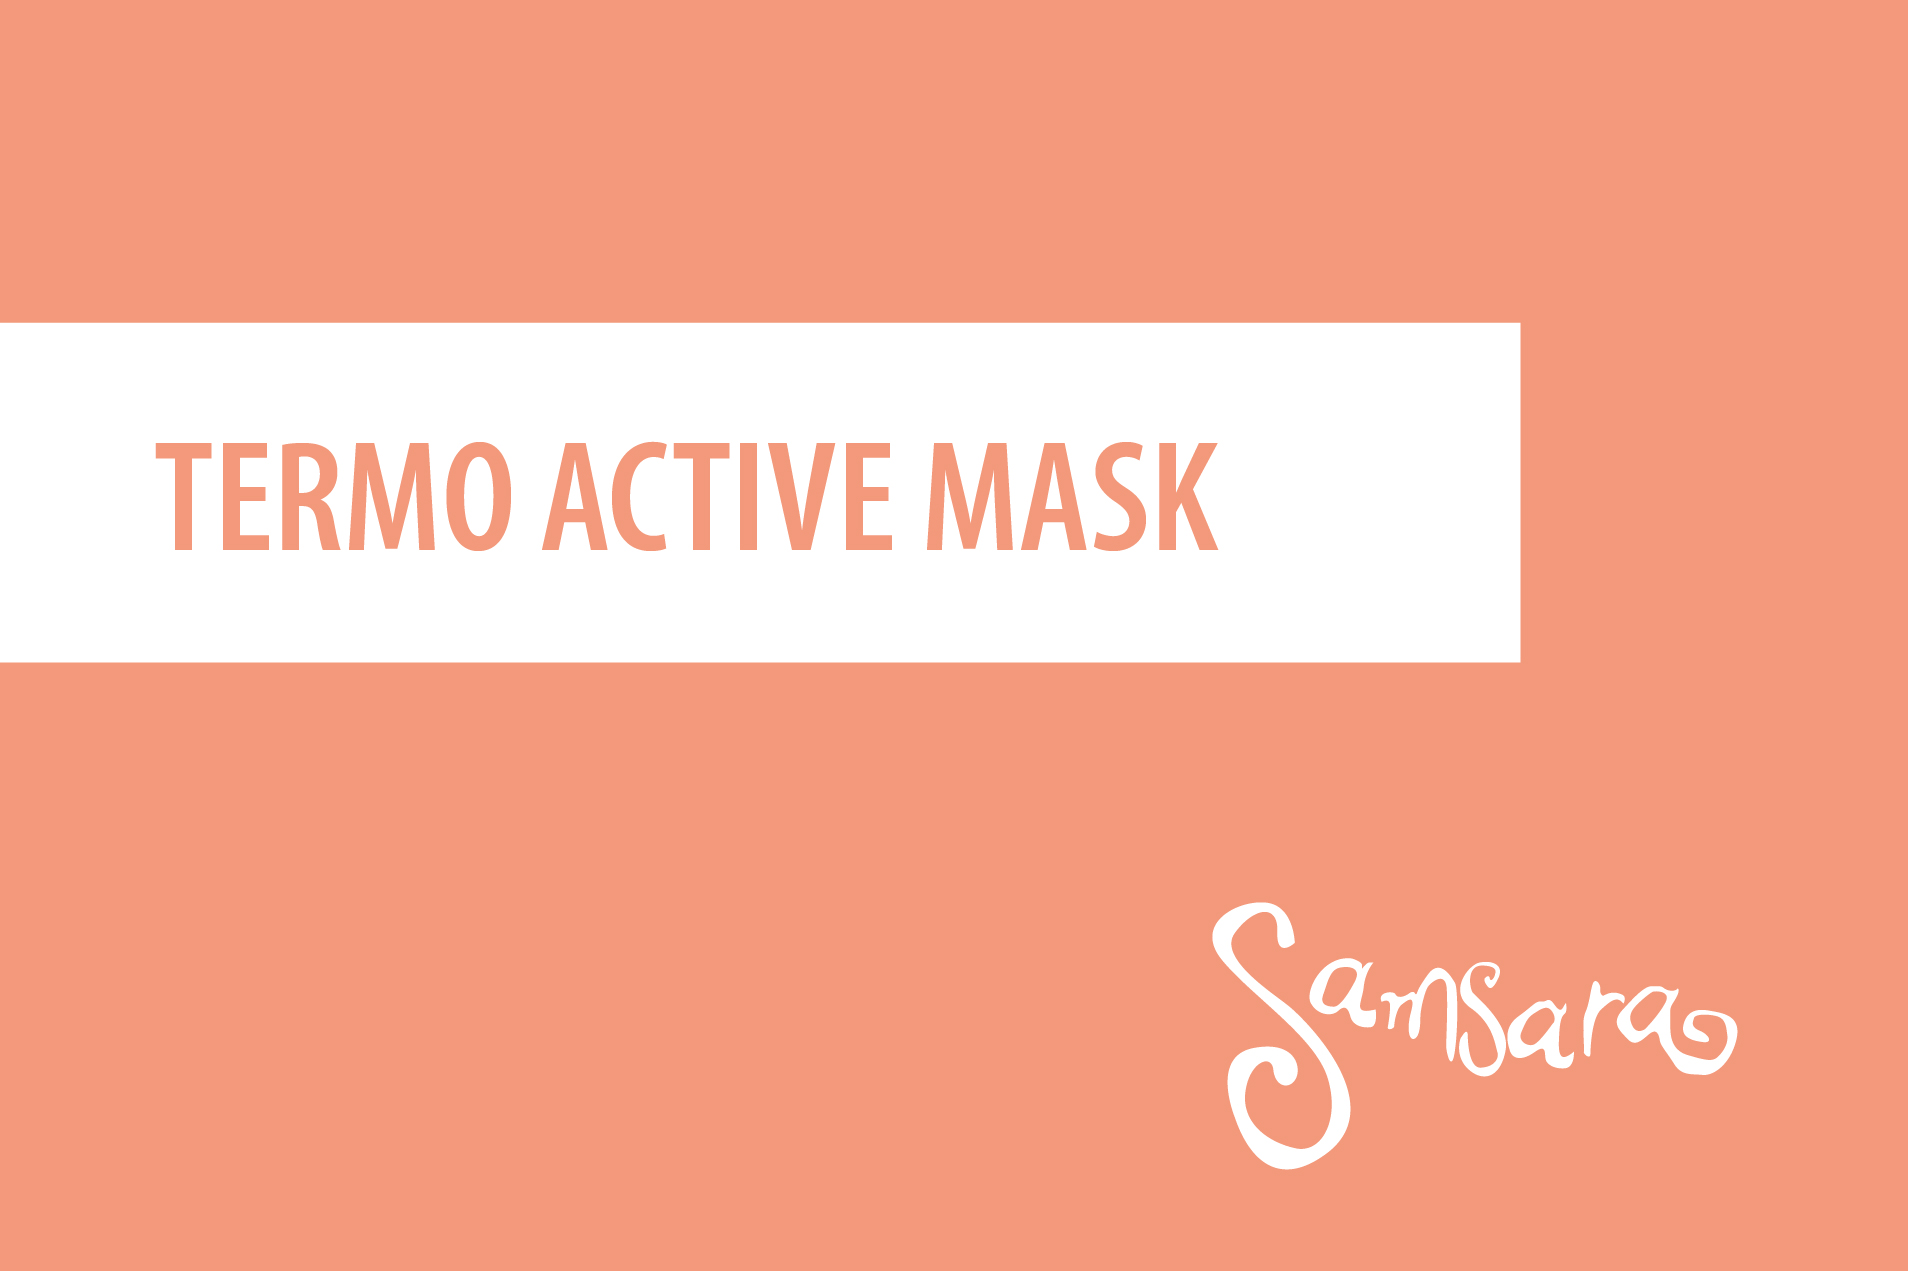 TERMO ACTIVE MASK